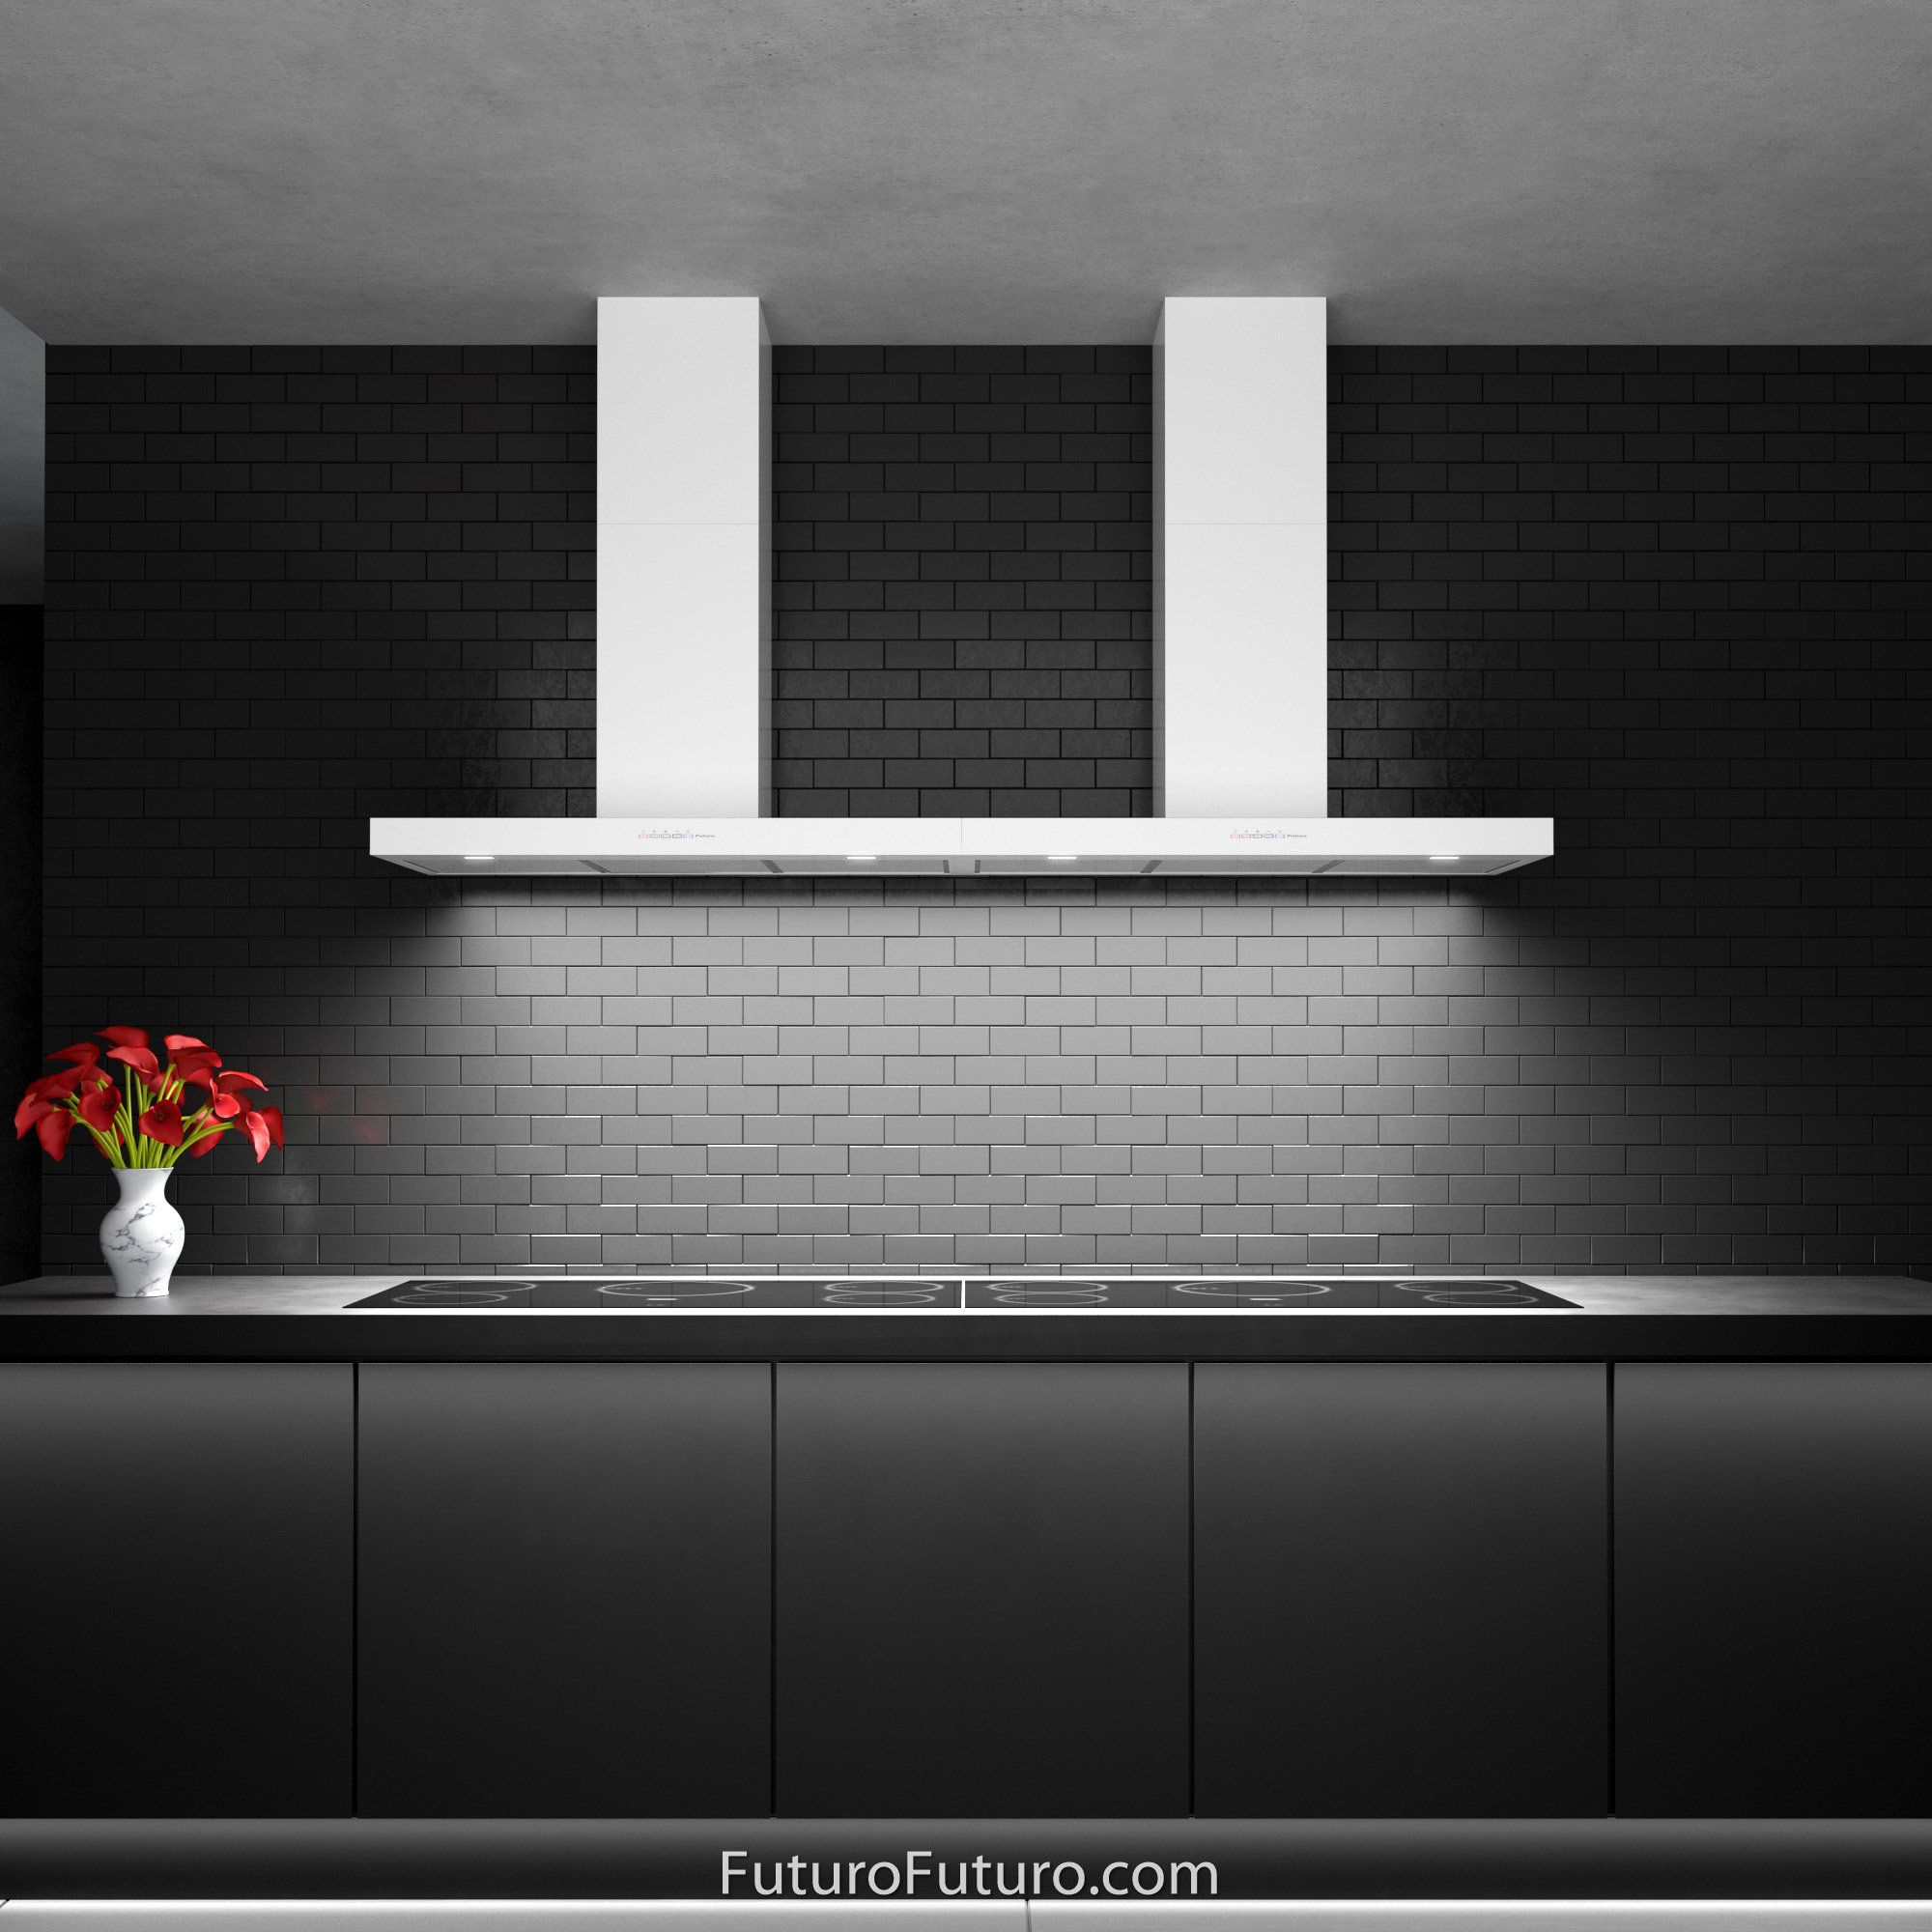 36 Minimal White Wall Mount Range Hood By Futuro Futuro In 2020 White Walls Ductless Range Hood Kitchen Fan